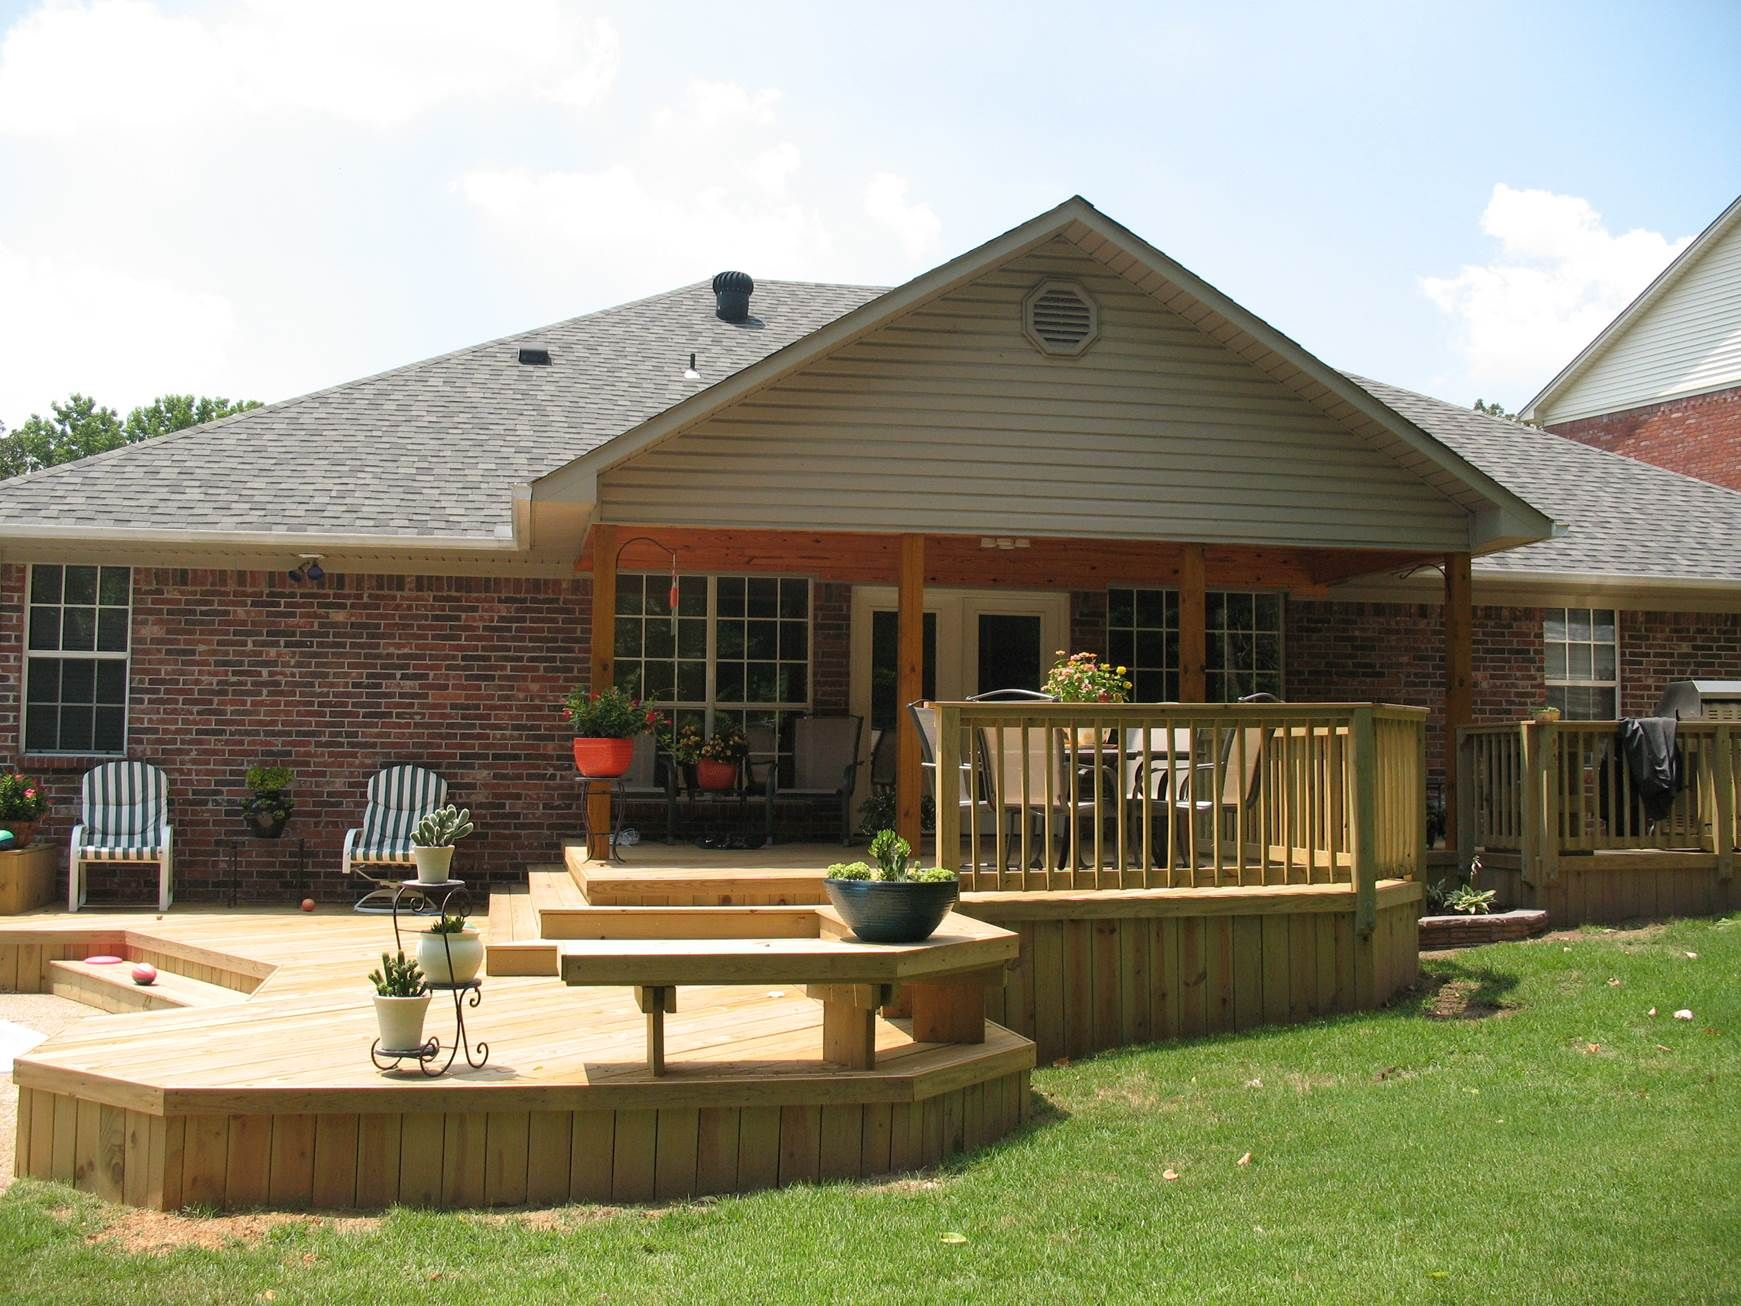 The Complete Guide About Multi Level Decks With 27 Design Ideas Pinterest Decking Porch